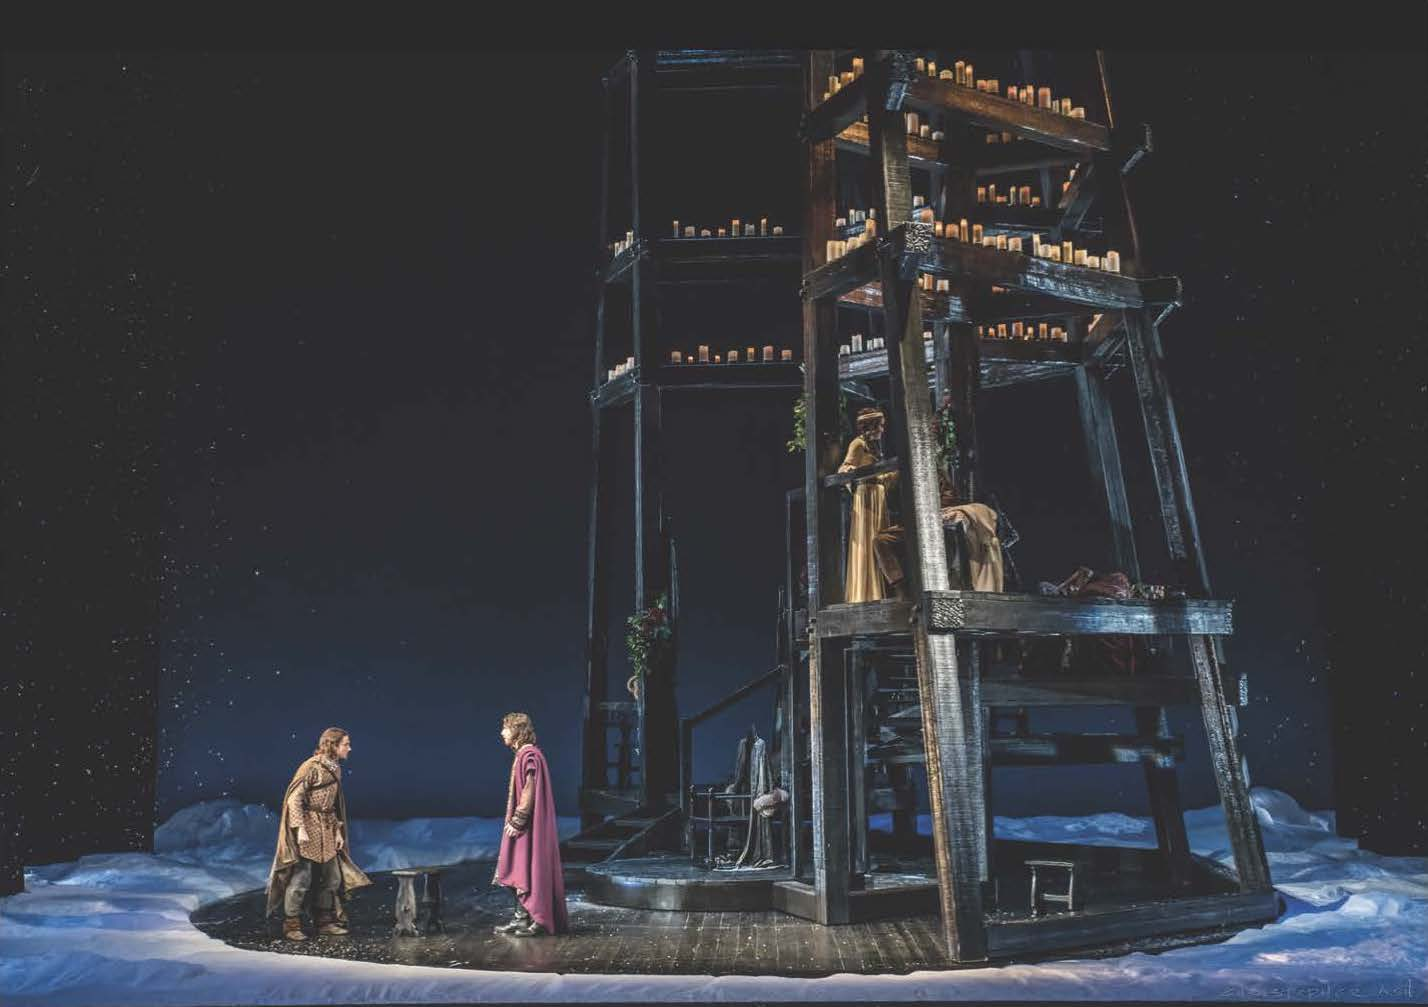 two people standing next to a large wooden structure on a circular wooden platform on a dark stage